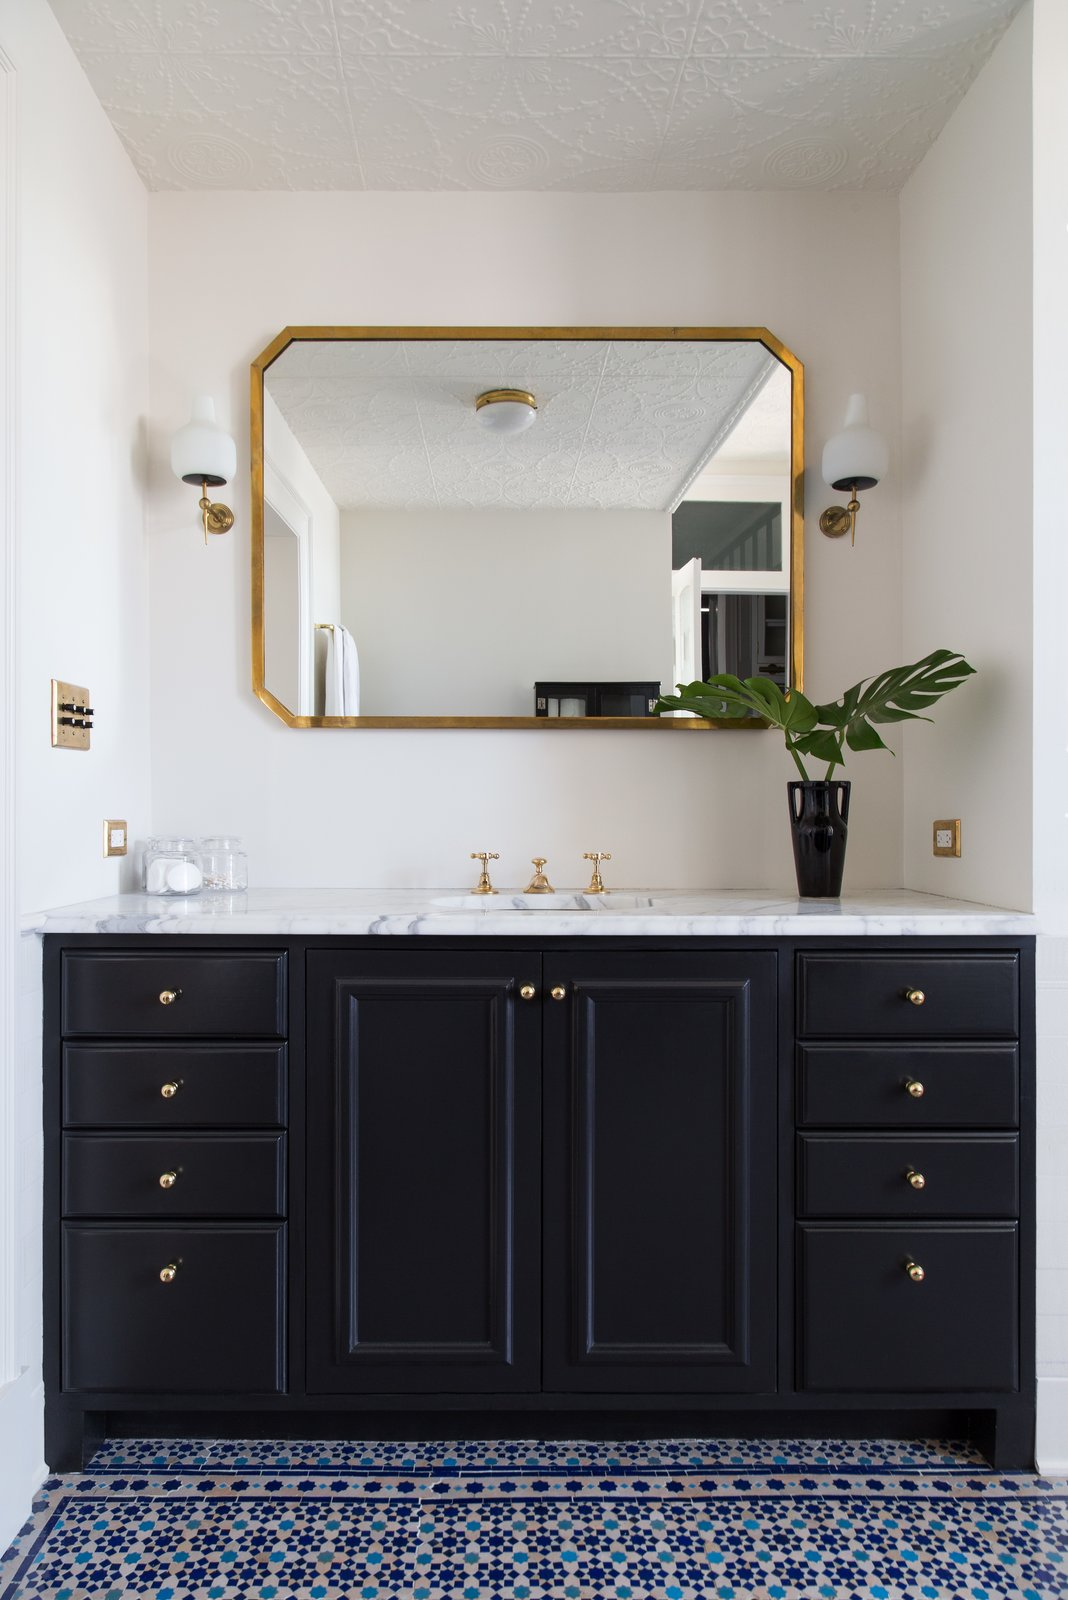 Bath Room, Marble Counter, Drop In Sink, Ceramic Tile Floor, and Wall Lighting  Photo 20 of 22 in A 19th-Century Schoolhouse in Brooklyn Becomes a Classy Apartment